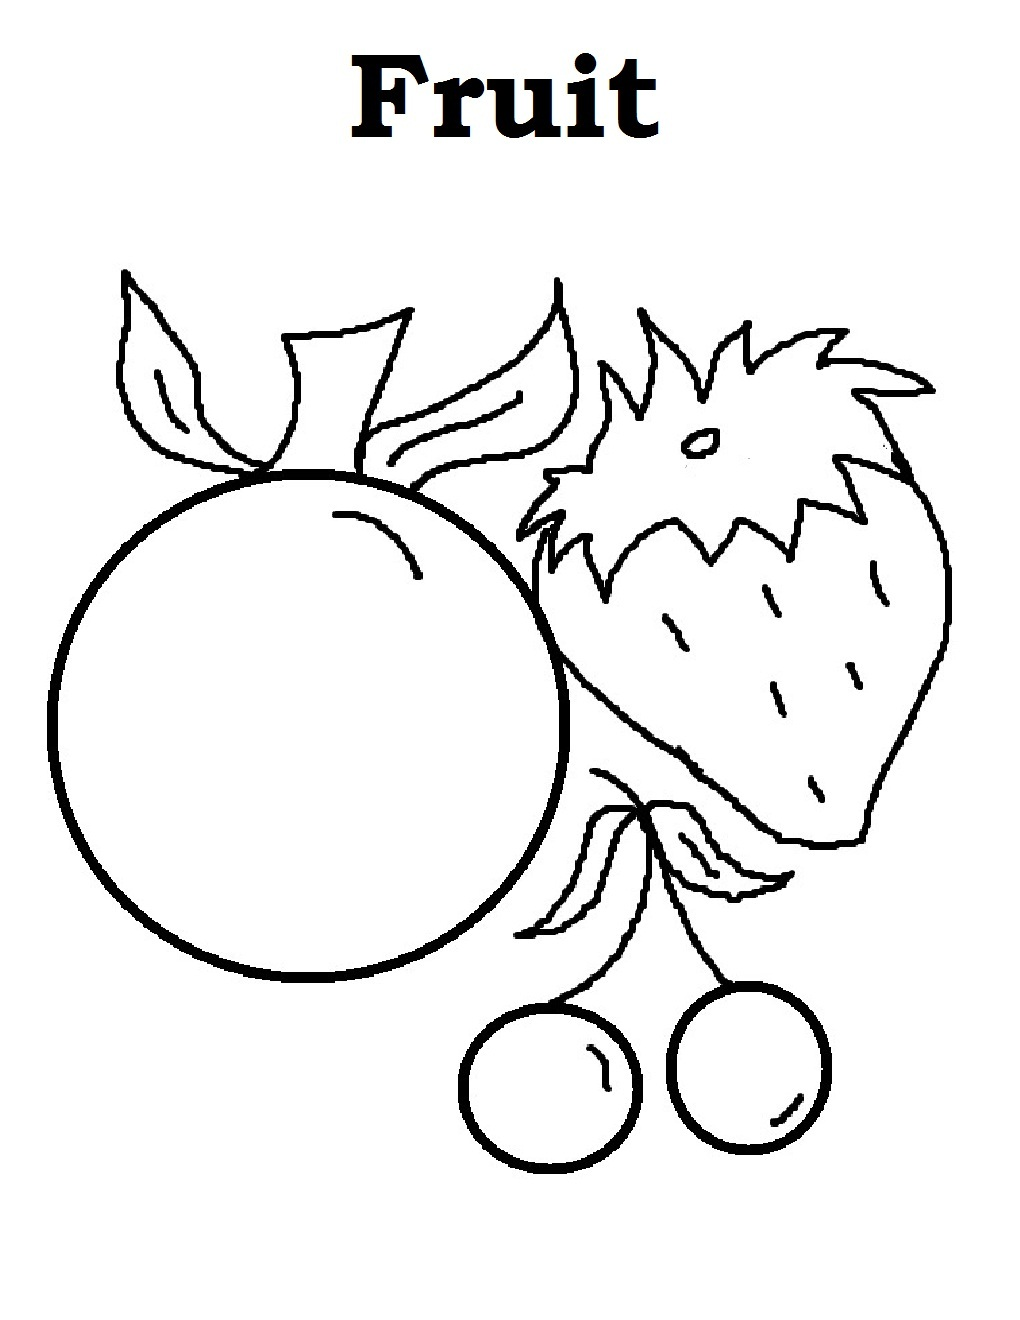 1020x1320 free printable fruit coloring pages for kids